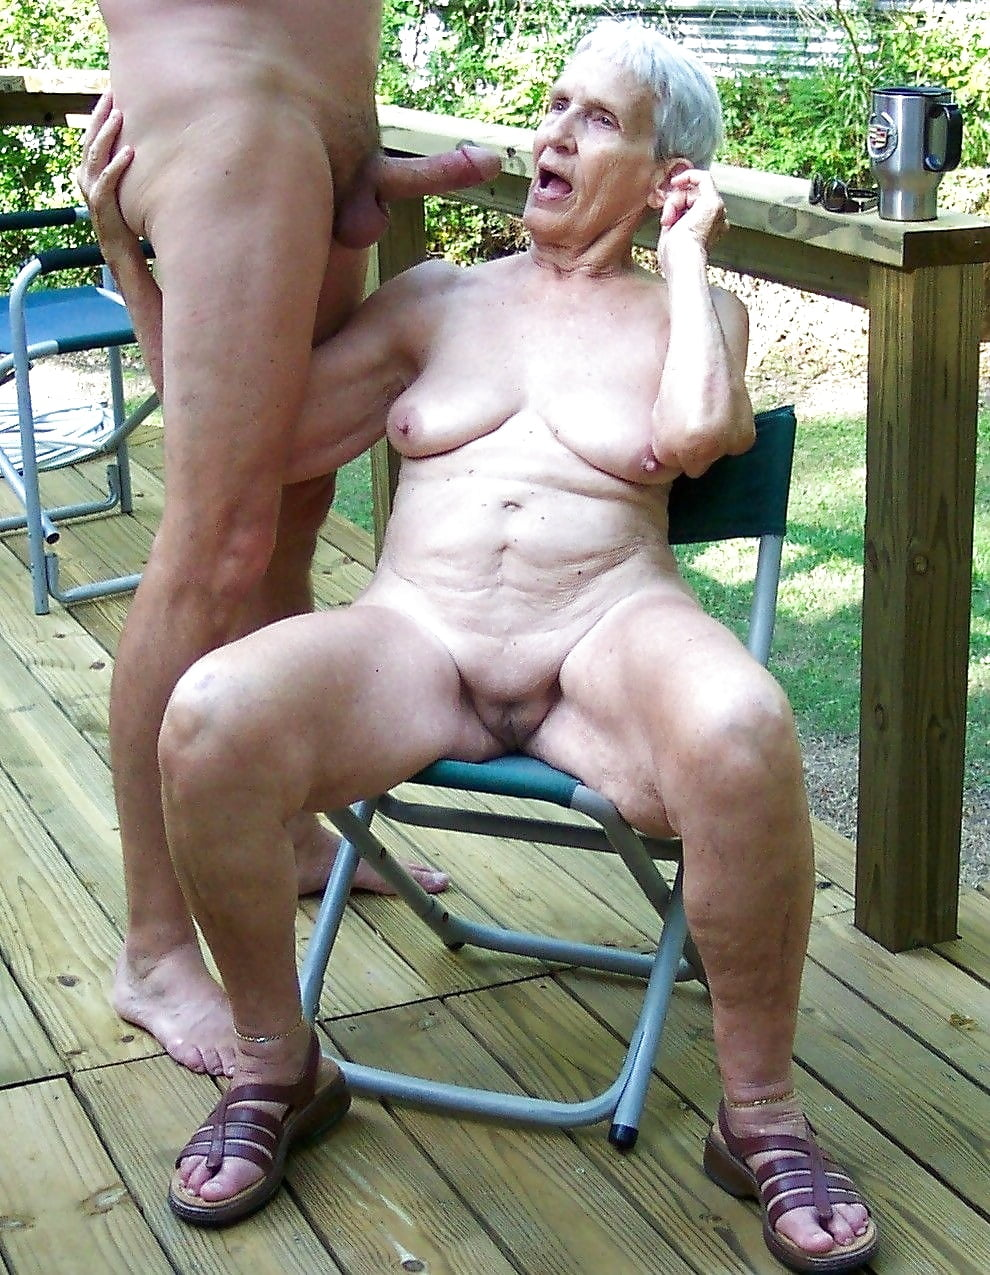 sex-old-woman-fucks-public-young-hot-nice-girl-sex